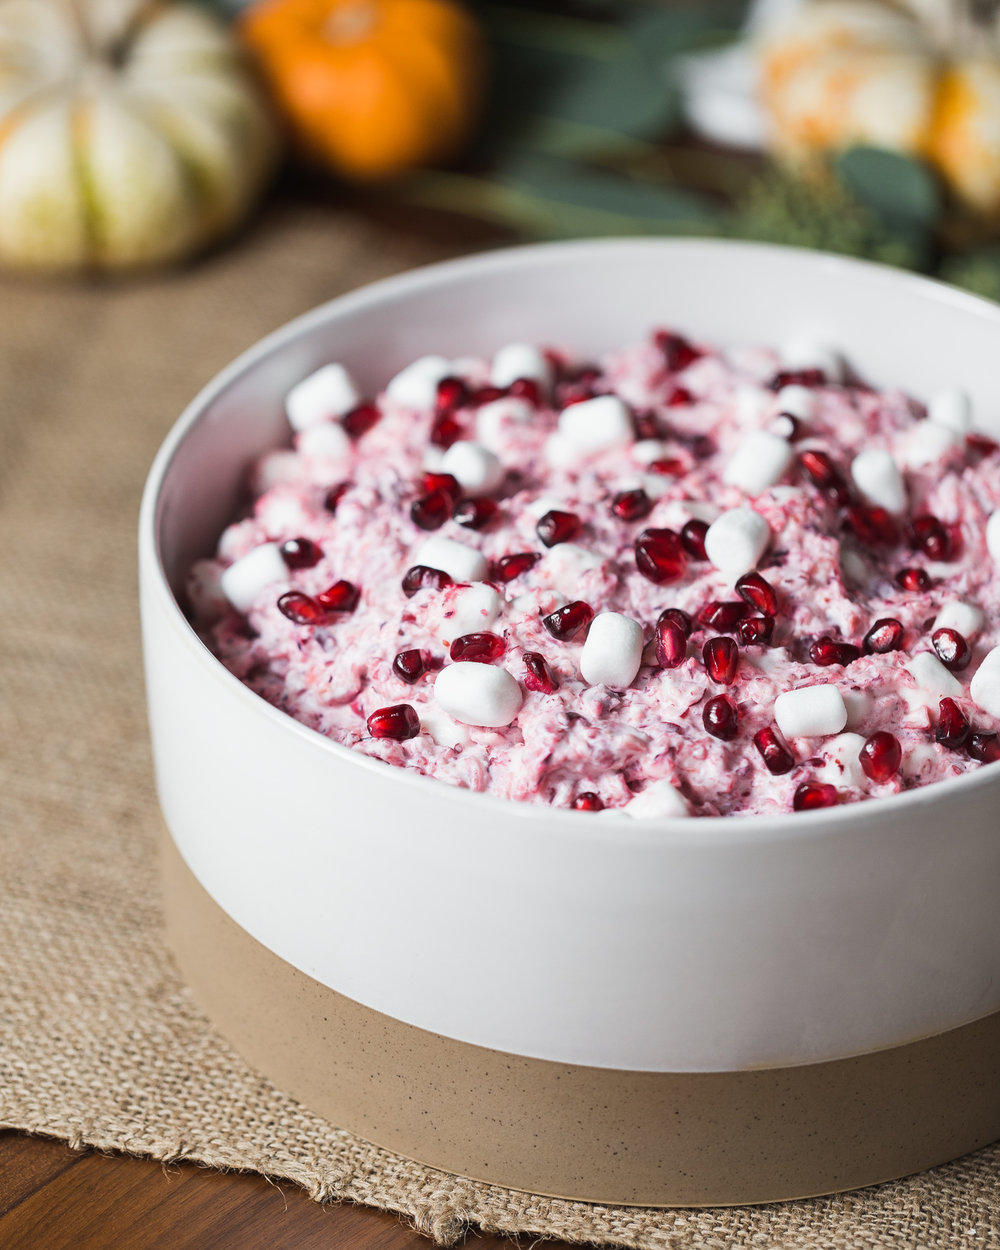 Cranberry Salad - Yield: 8-10 servings3 cups whole cranberries, fresh¾ cup sugar1 (20 oz. can) crushed pineapple, drained2 cups miniature marshmallows1 cup heavy whipping cream½ cup powdered sugar1 teaspoon vanilla extract1 cup pomegranate seedsChop cranberries in food processor or blender until fine and no large pieces remain. Transfer to mixing bowl and stir sugar into cranberries. Cover and chill for at least 2 hours or up to overnight.Drain any accumulated juices from cranberries and reserve. Stir in drained pineapple and marshmallows. Set aside.In a mixing bowl, whip heavy cream adding powdered sugar and vanilla to sweeten until soft peaks form. Fold into cranberry mixture until fully incorporated.Refrigerate or freeze. Garnish with pomegranate seeds